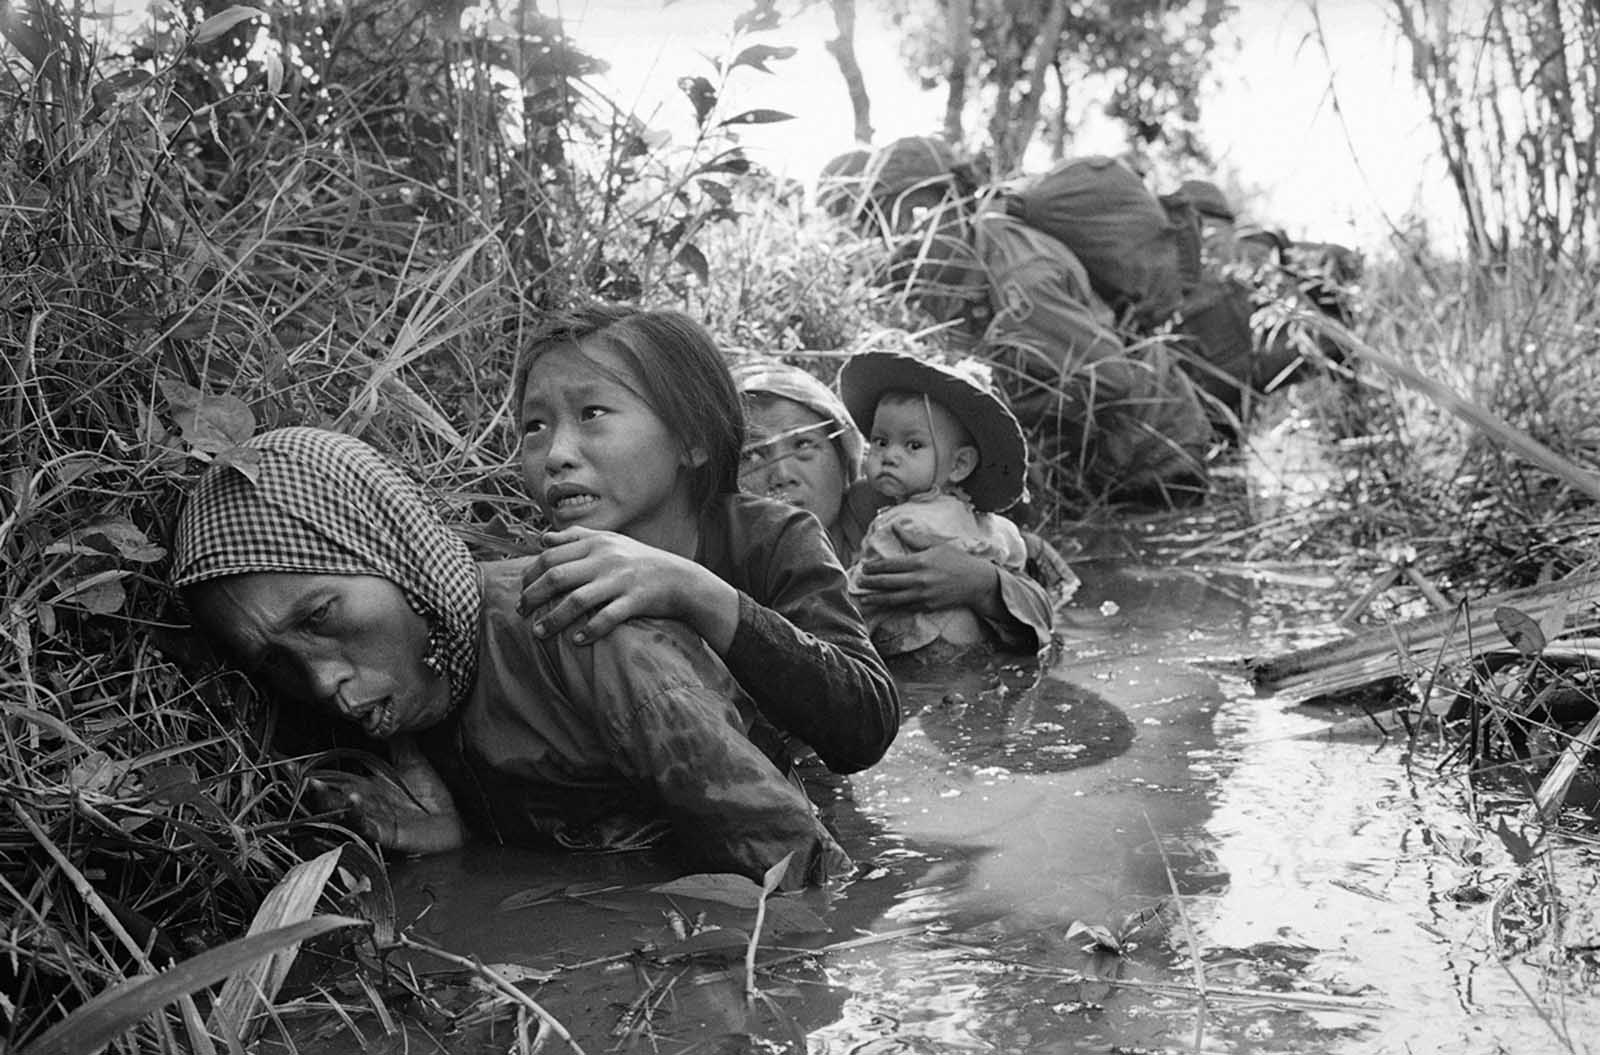 Women and children crouch in a muddy canal as they take cover from intense Viet Cong fire at Bao Trai, about 20 miles west of Saigon, on January 1, 1966. Paratroopers, background, of the U.S. 173rd Airborne Brigade escorted the South Vietnamese civilians through a series of firefights during the U.S. assault on a Viet Cong stronghold.